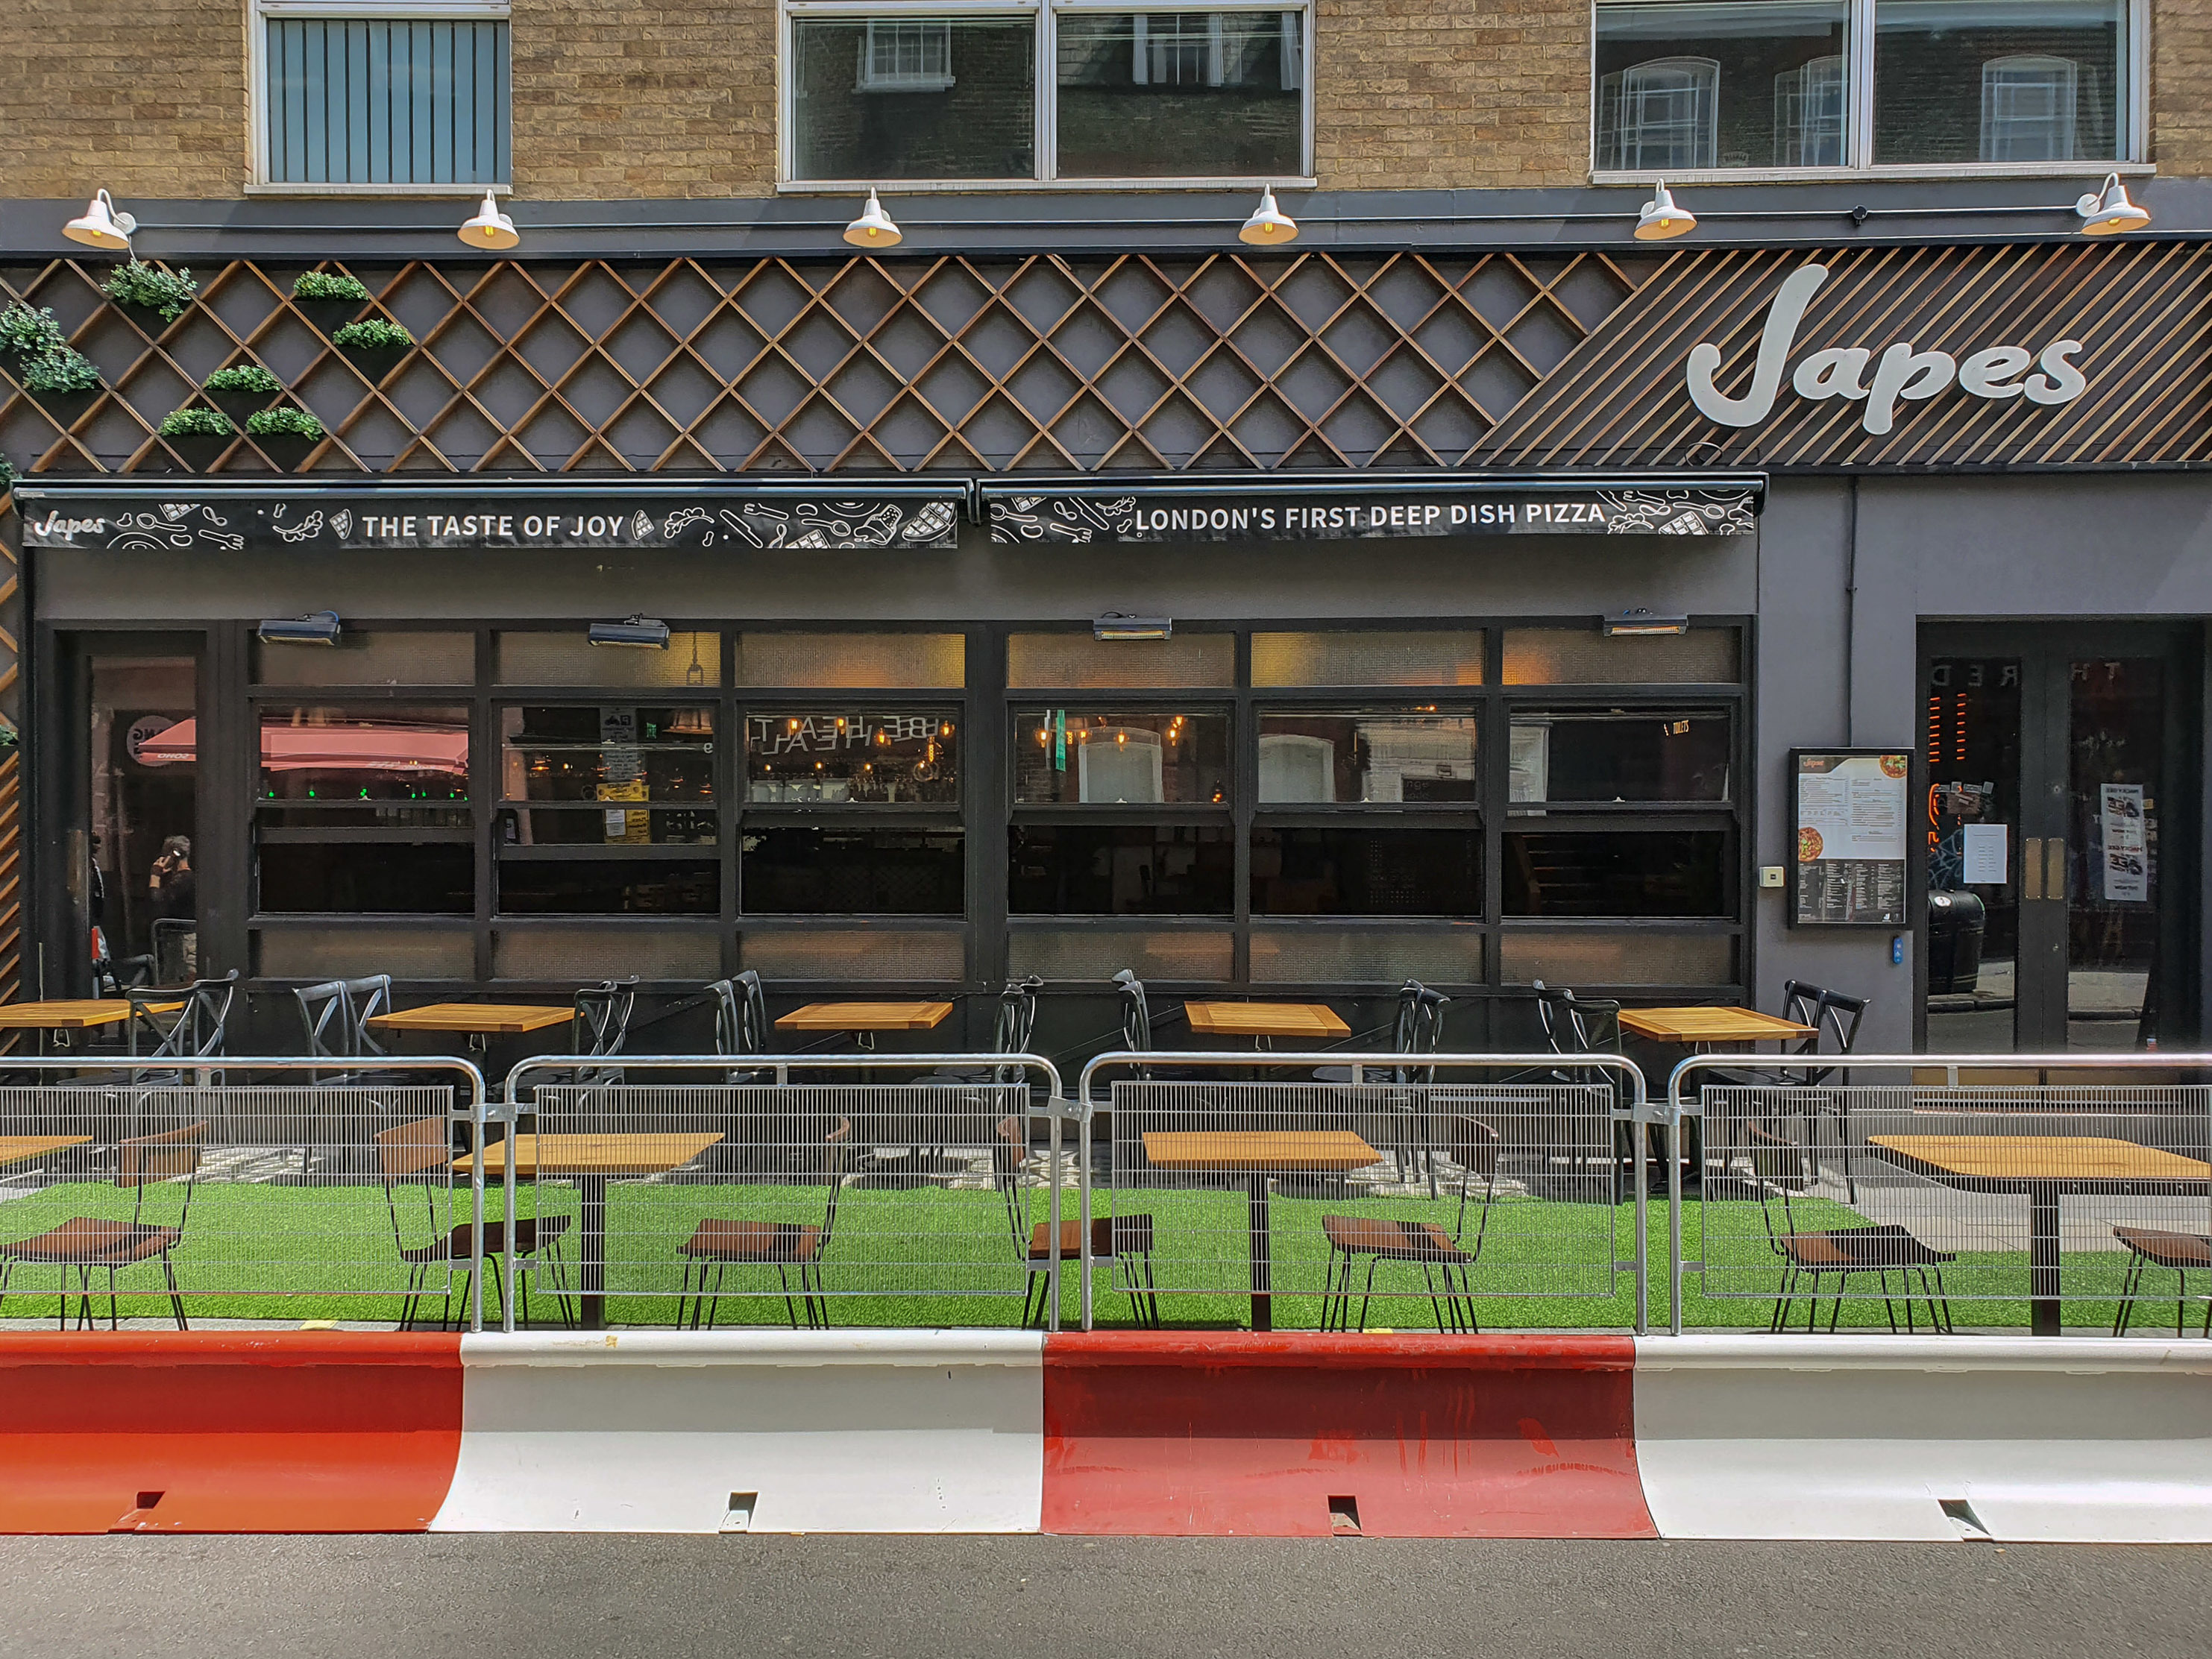 Japes restaurant in Soho has made use of spaces outside to allow customers to maintain social distance when dinning in an attempt to curb the spread of coronavirus. (Photo by Dave Rushen / SOPA Images/Sipa USA)